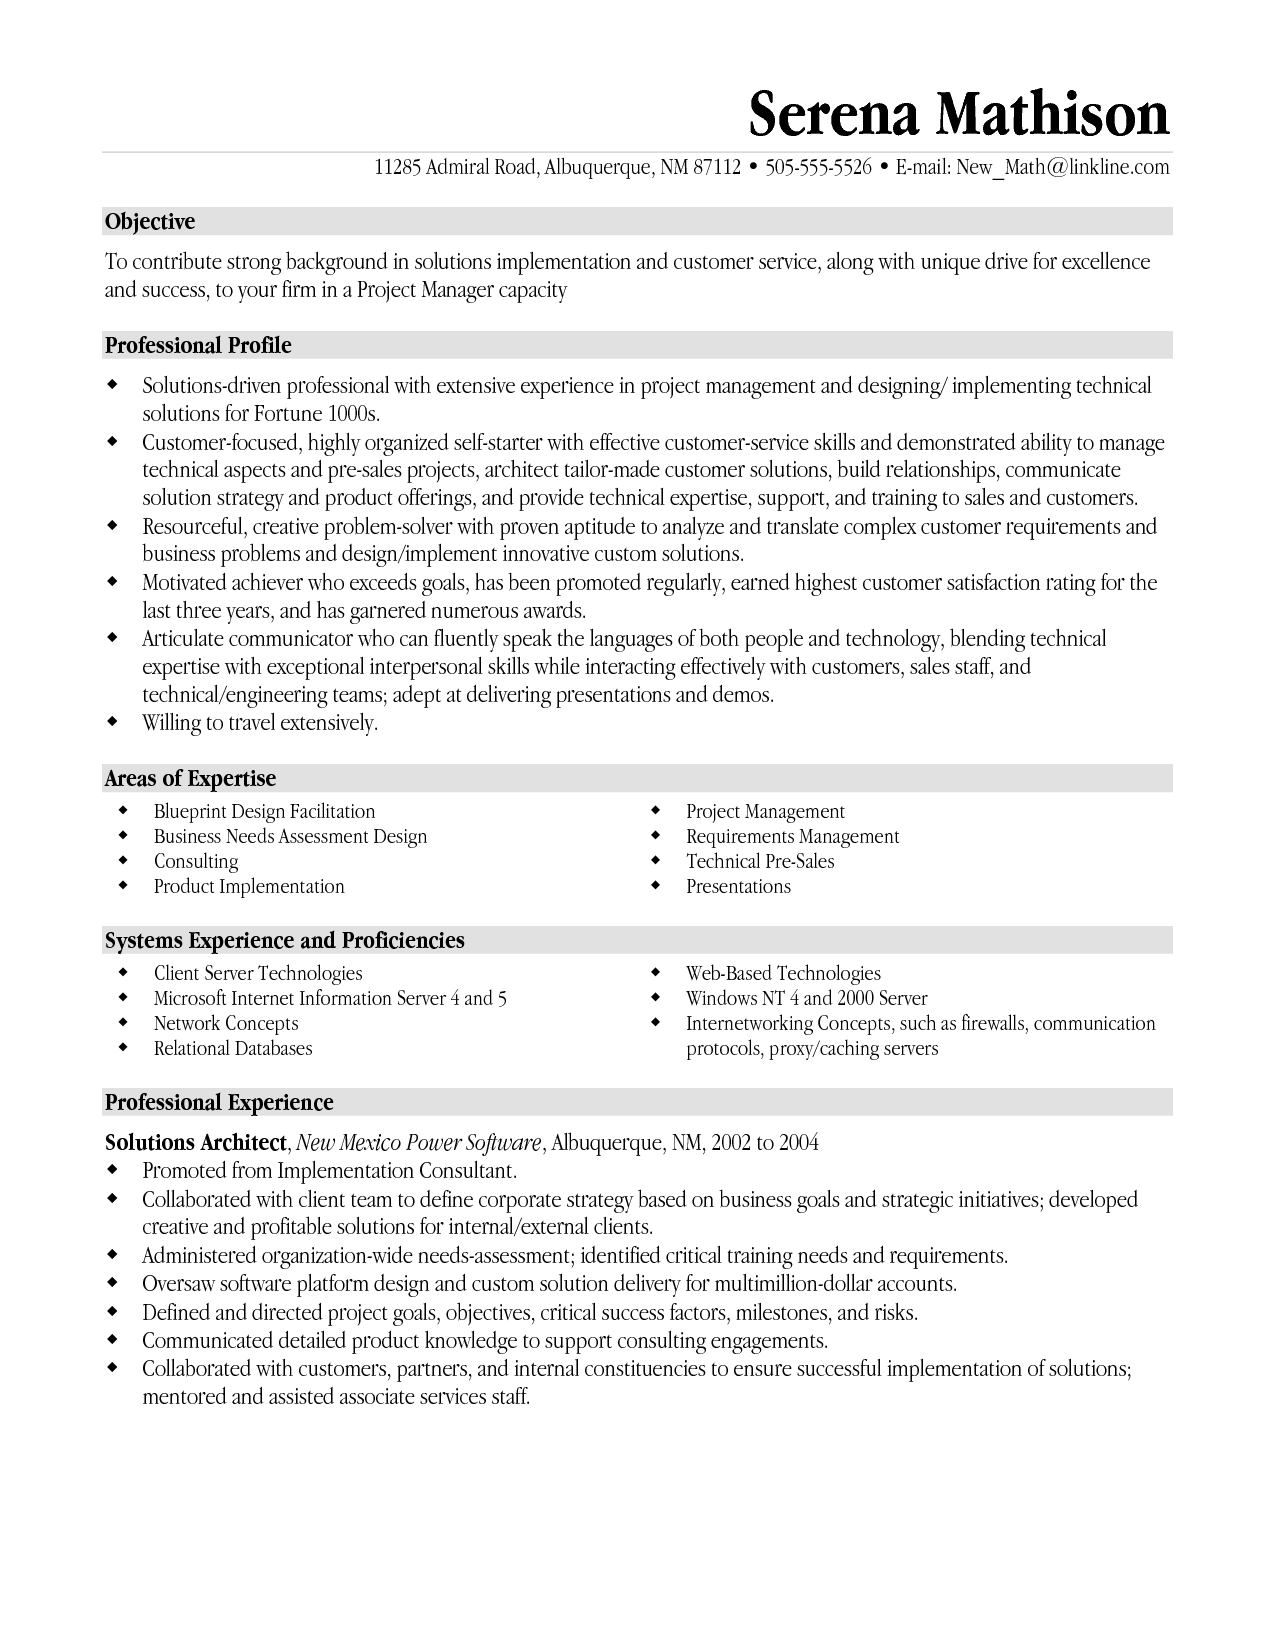 tech resume tips tech resume tips 4051